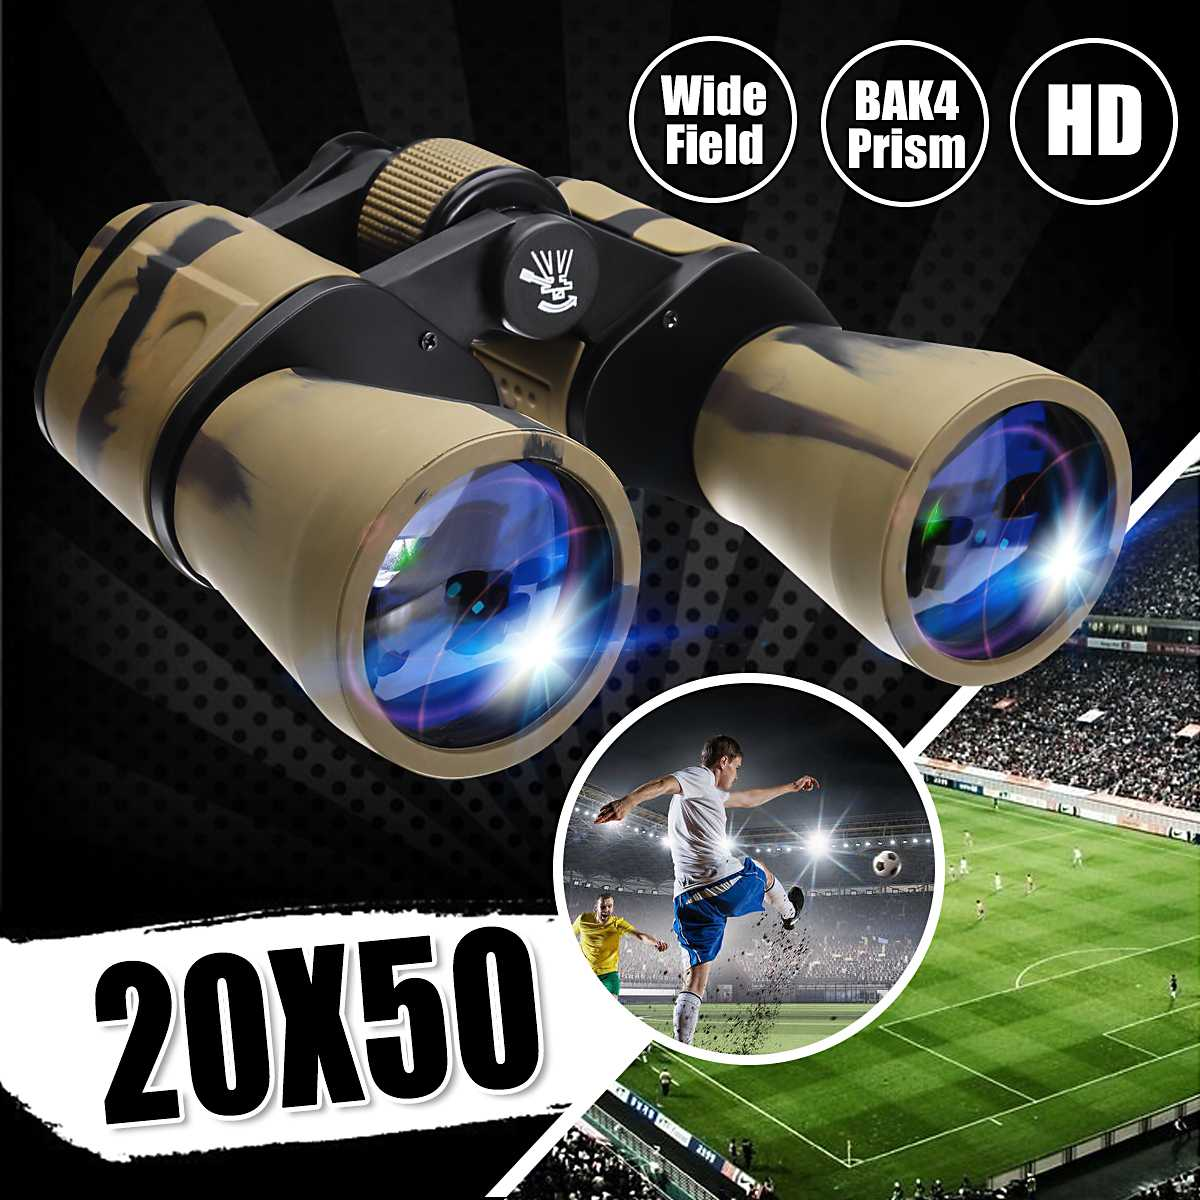 Telescope Pocket Large Wide-Angle Large Field of View high-Definition Low-Light Night Vision Binoculars Outdoor Sports Travel Mountaineering Portable Telescope